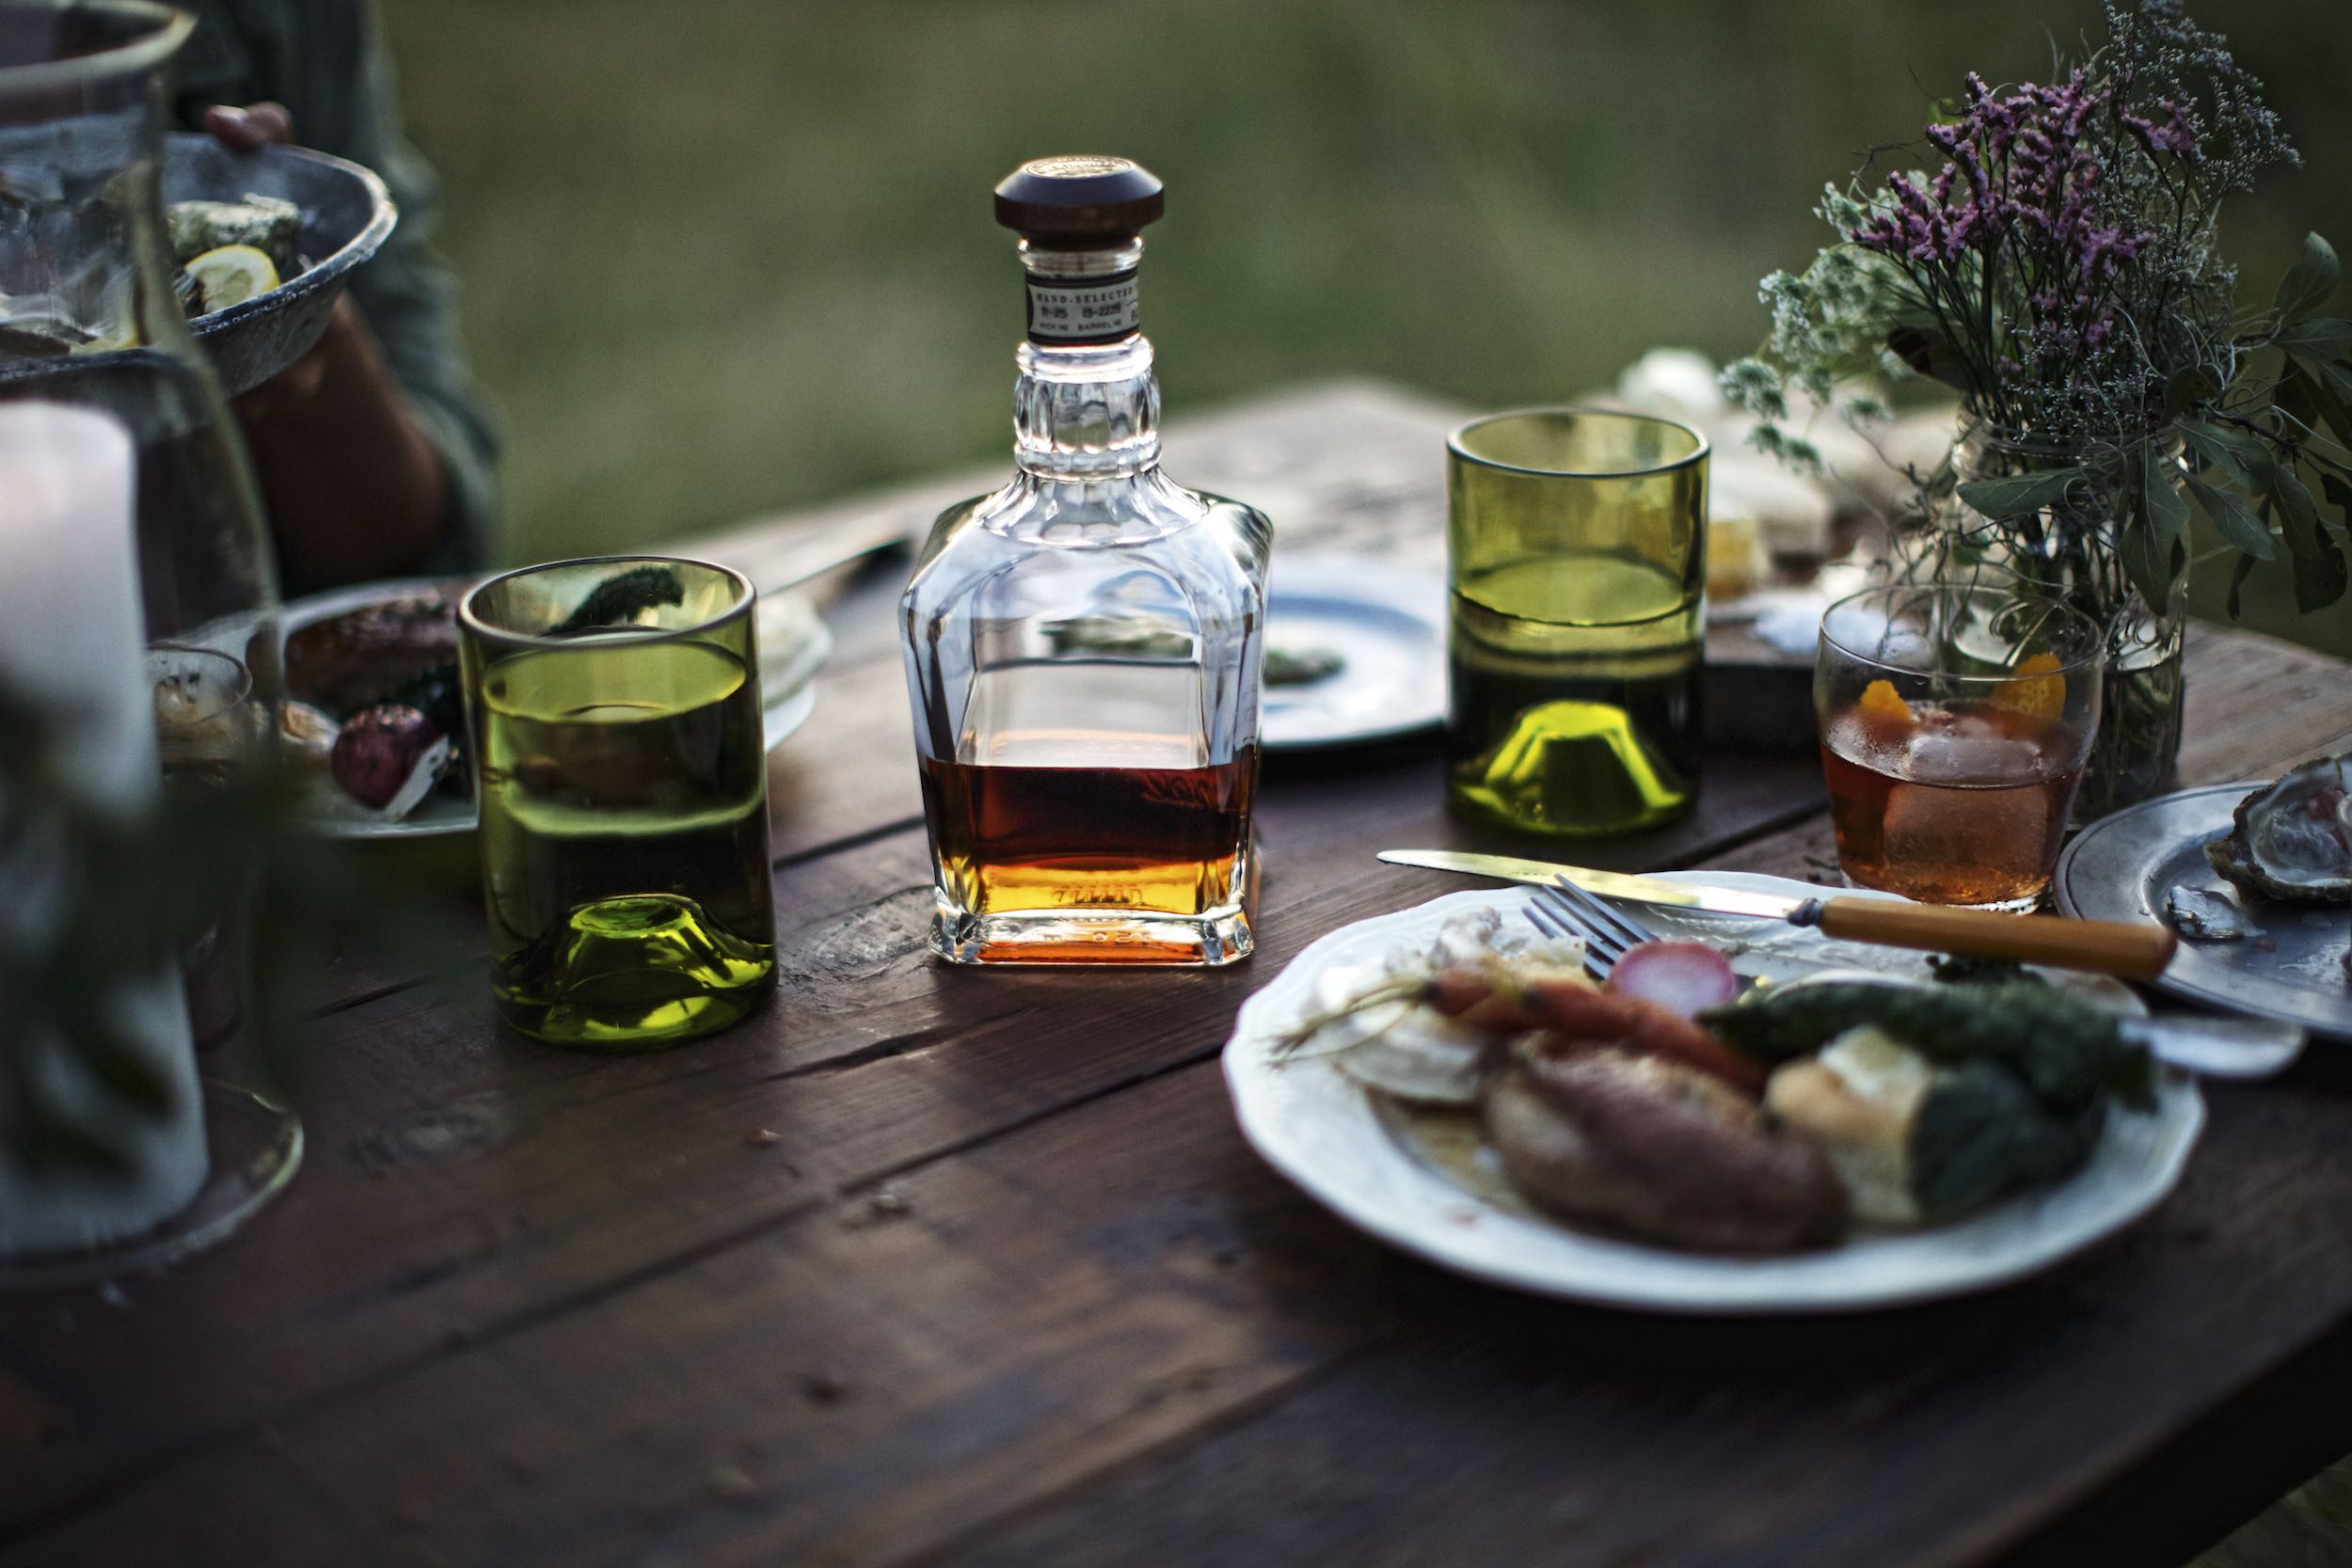 Jody Horton Photography - Jack Daniels Single Barrel bottle on outdoor dinner table.